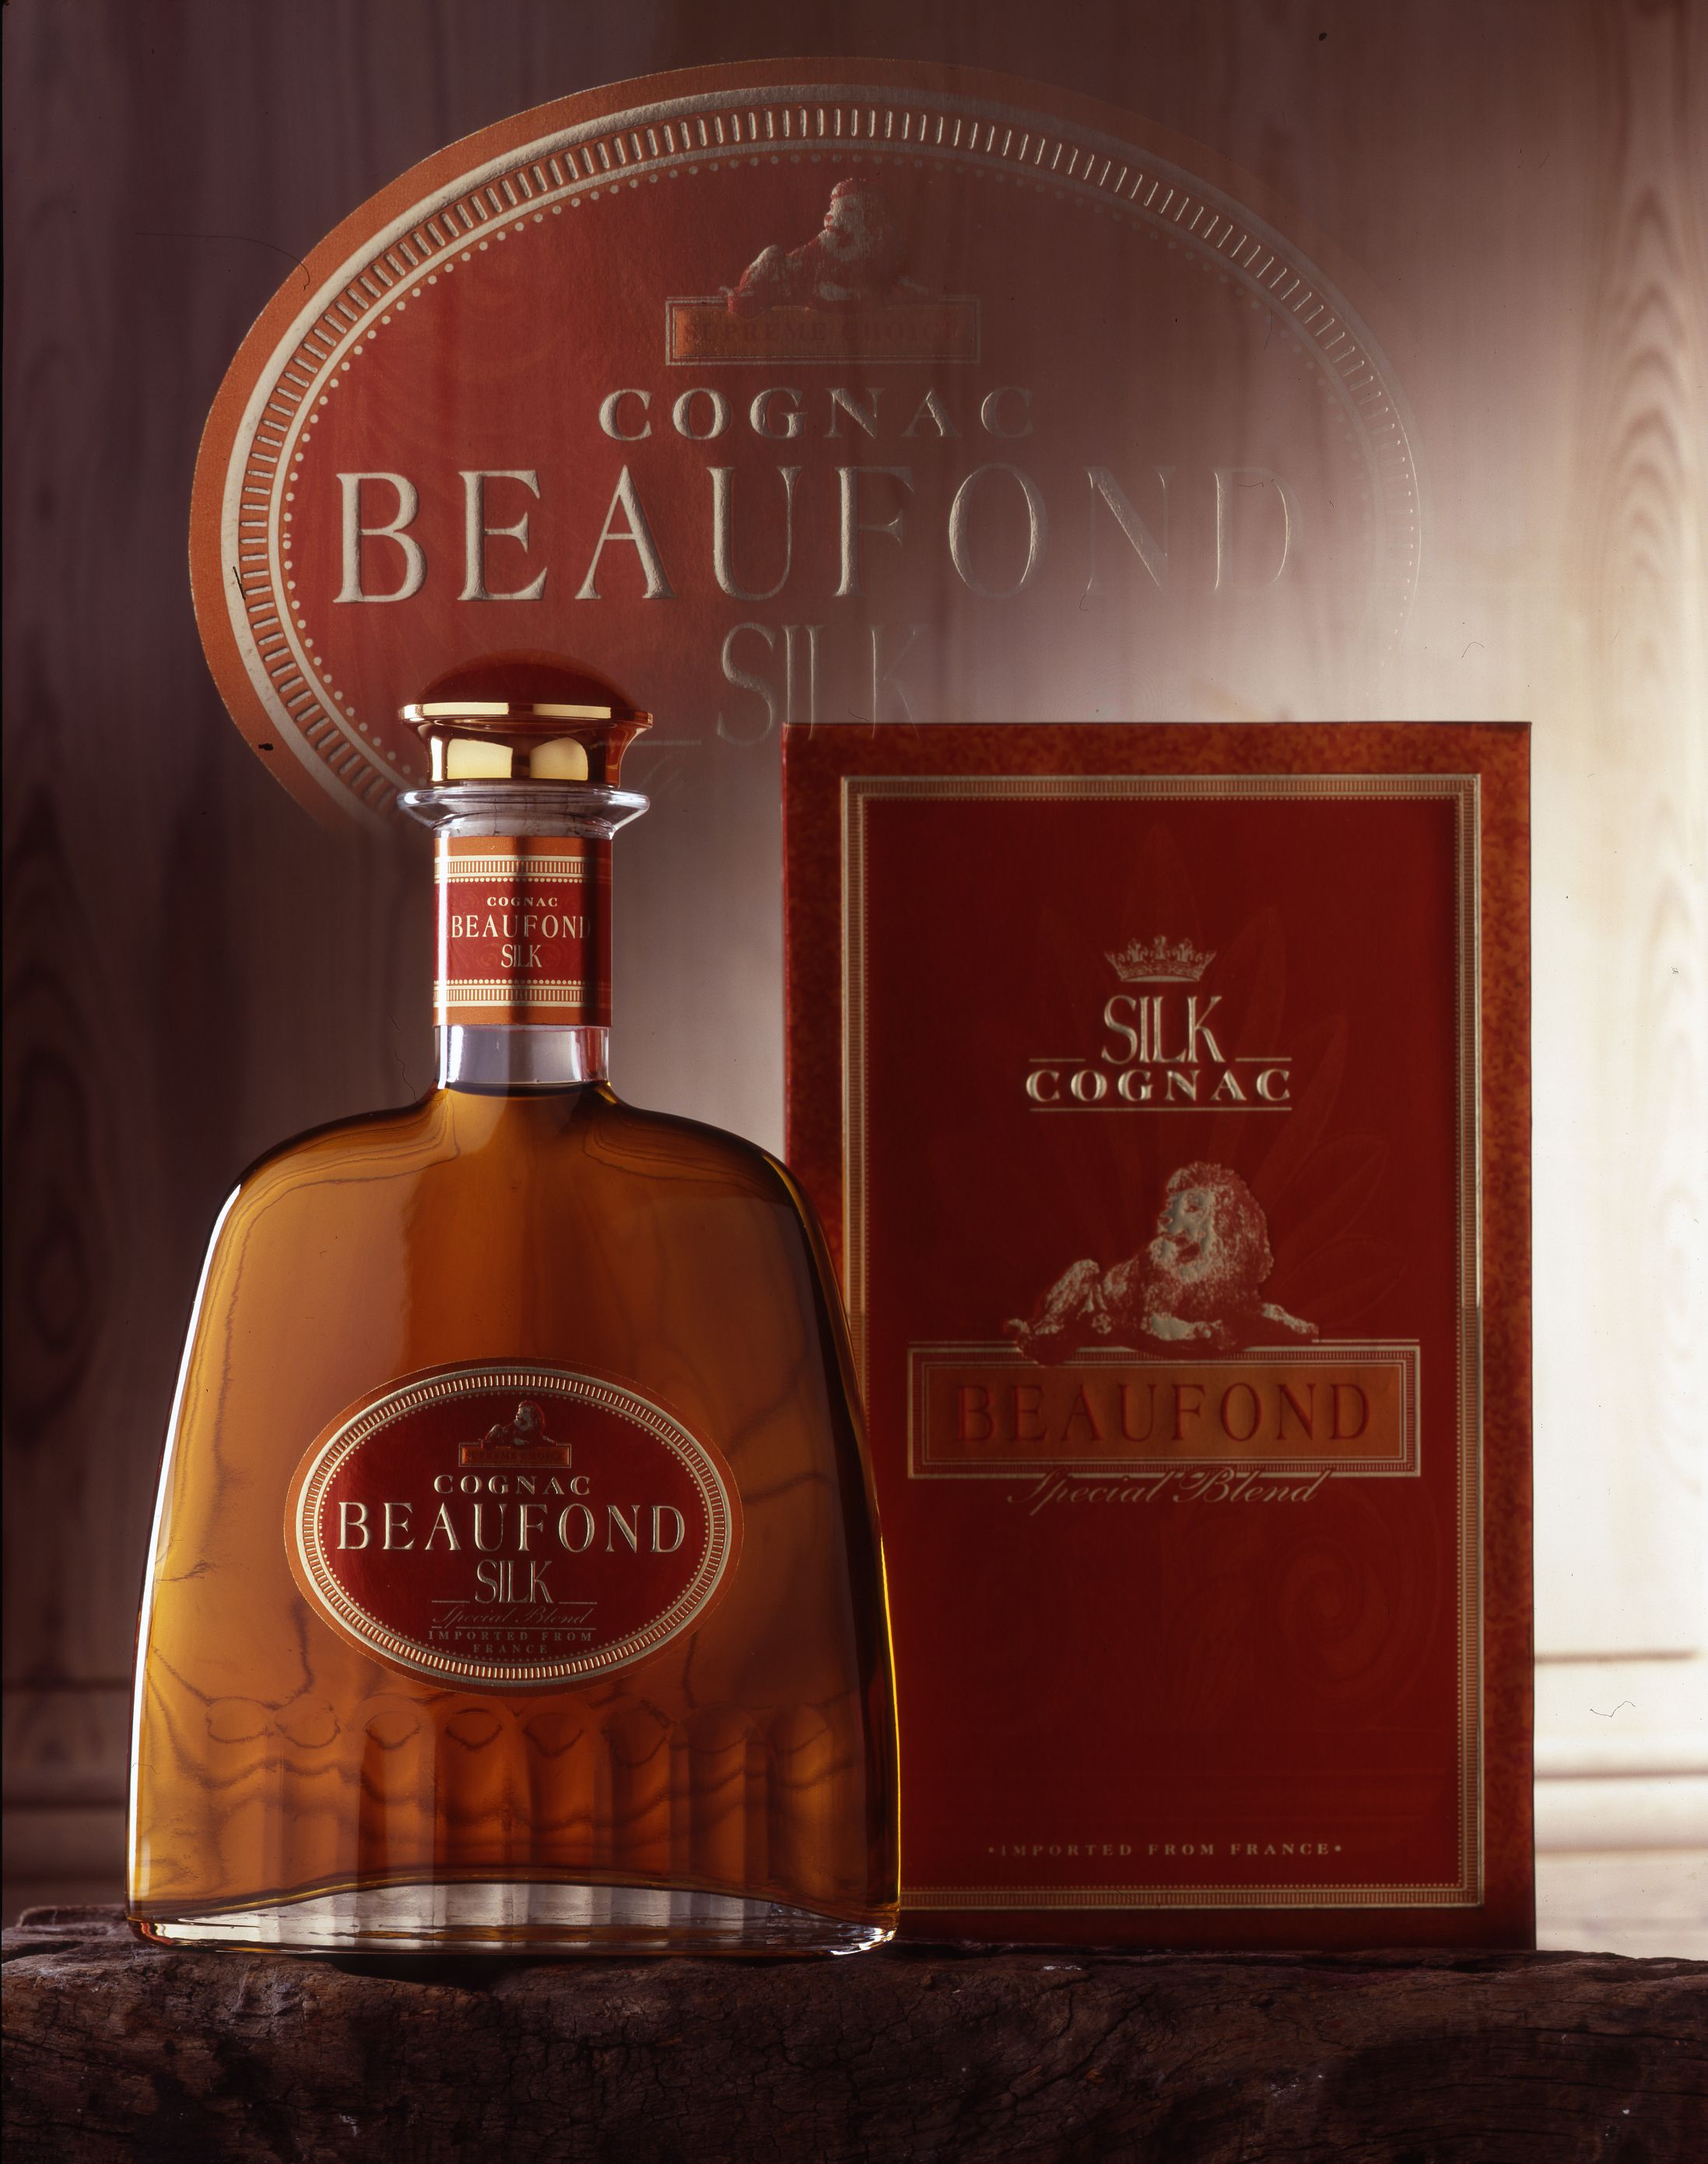 Beaufond Silk Liquor Bottles Bottle Cognac